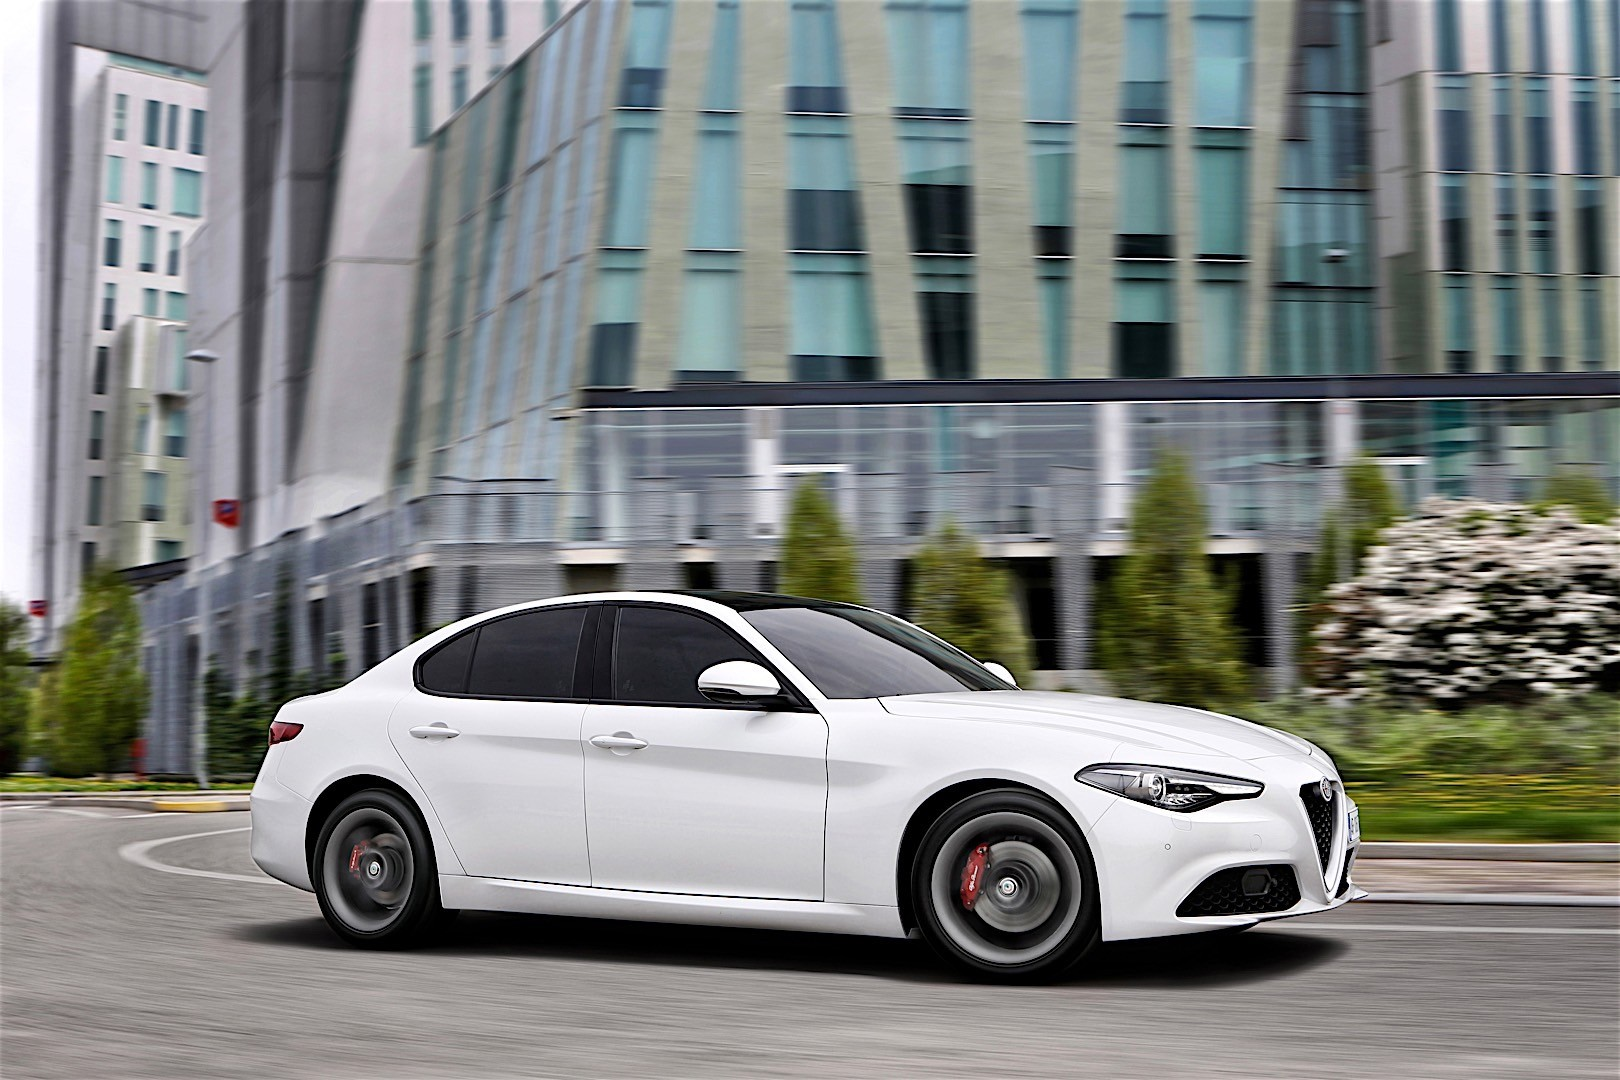 alfa romeo giulia specs 2016 2017 2018 autoevolution. Black Bedroom Furniture Sets. Home Design Ideas